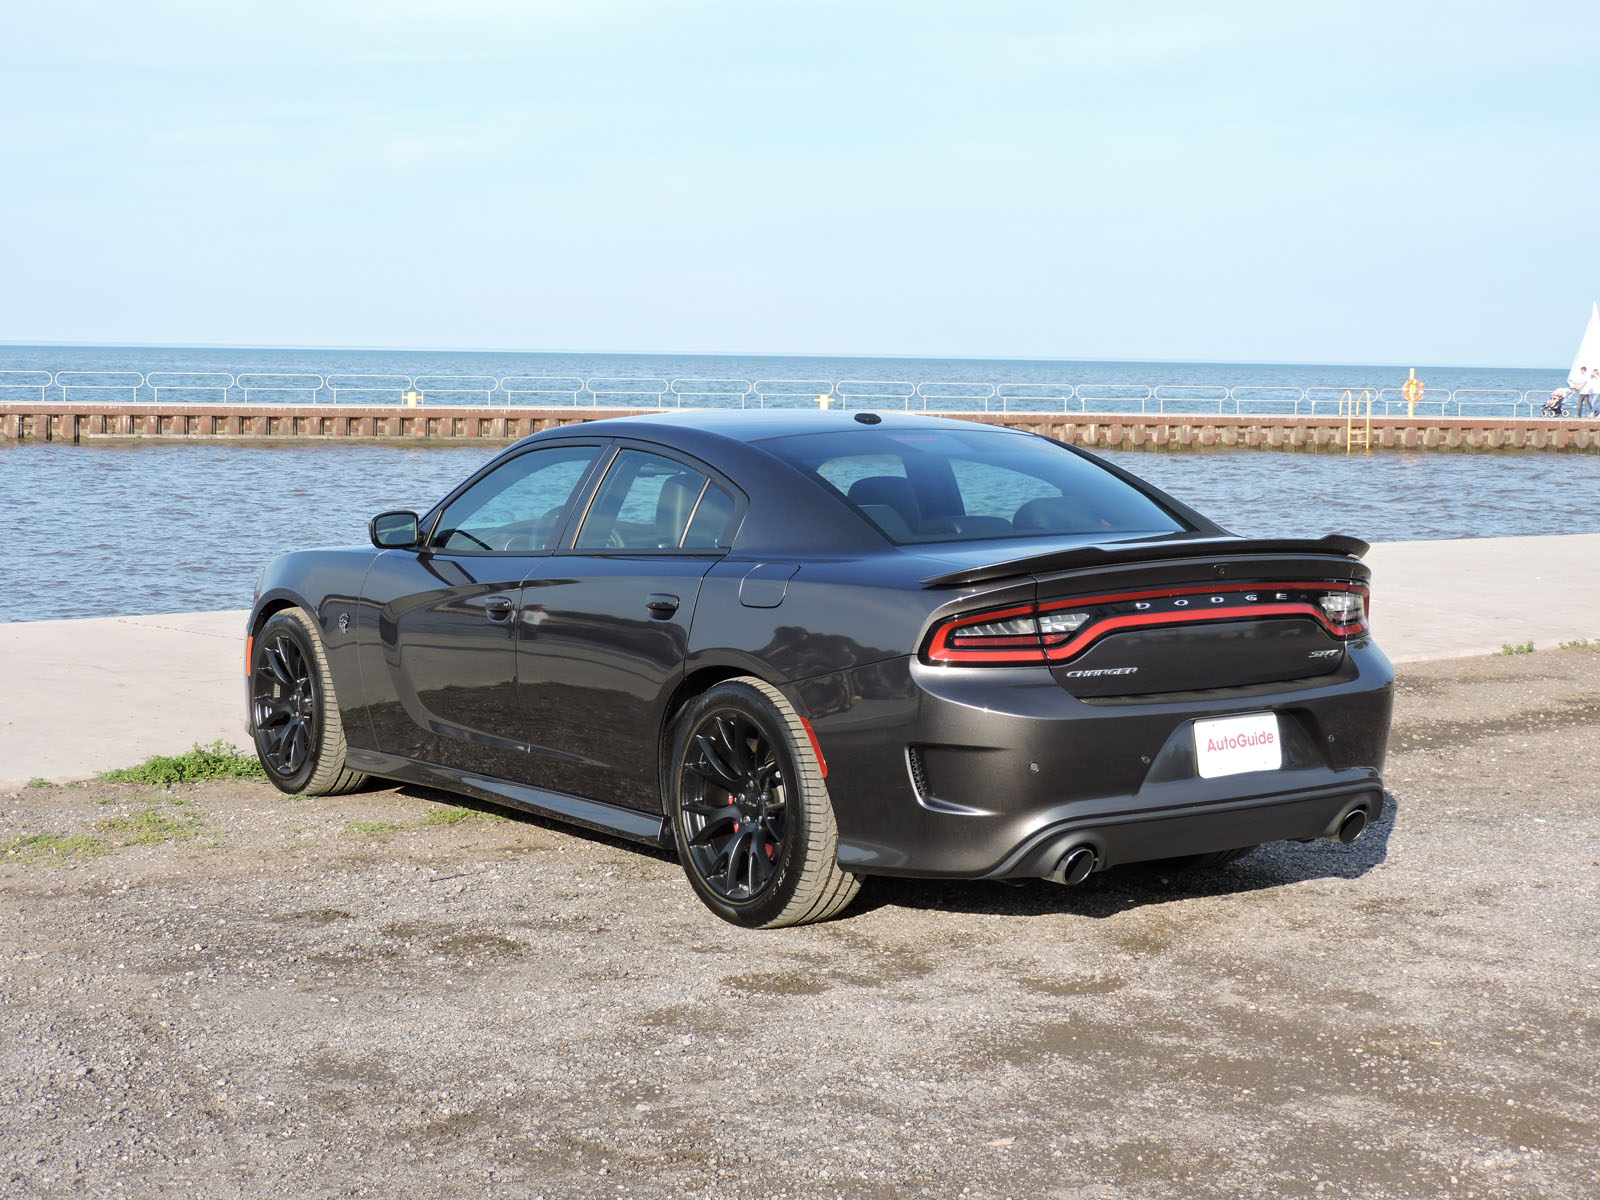 2015 Dodge Charger SRT cat is Baby's First Ride - AutoGuide.com